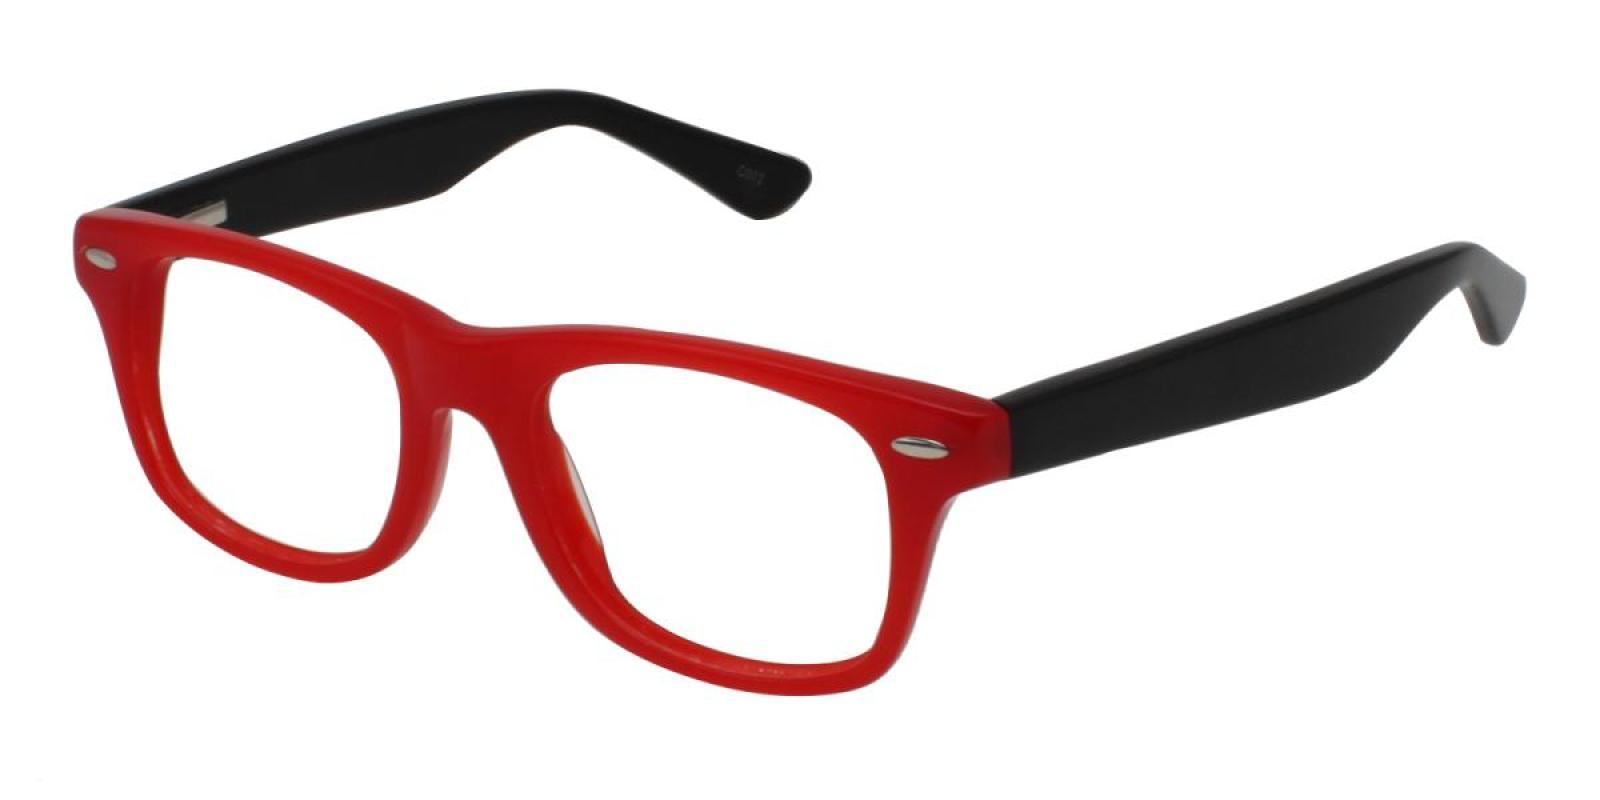 Bristol-Red-Square-Acetate-Eyeglasses-additional1